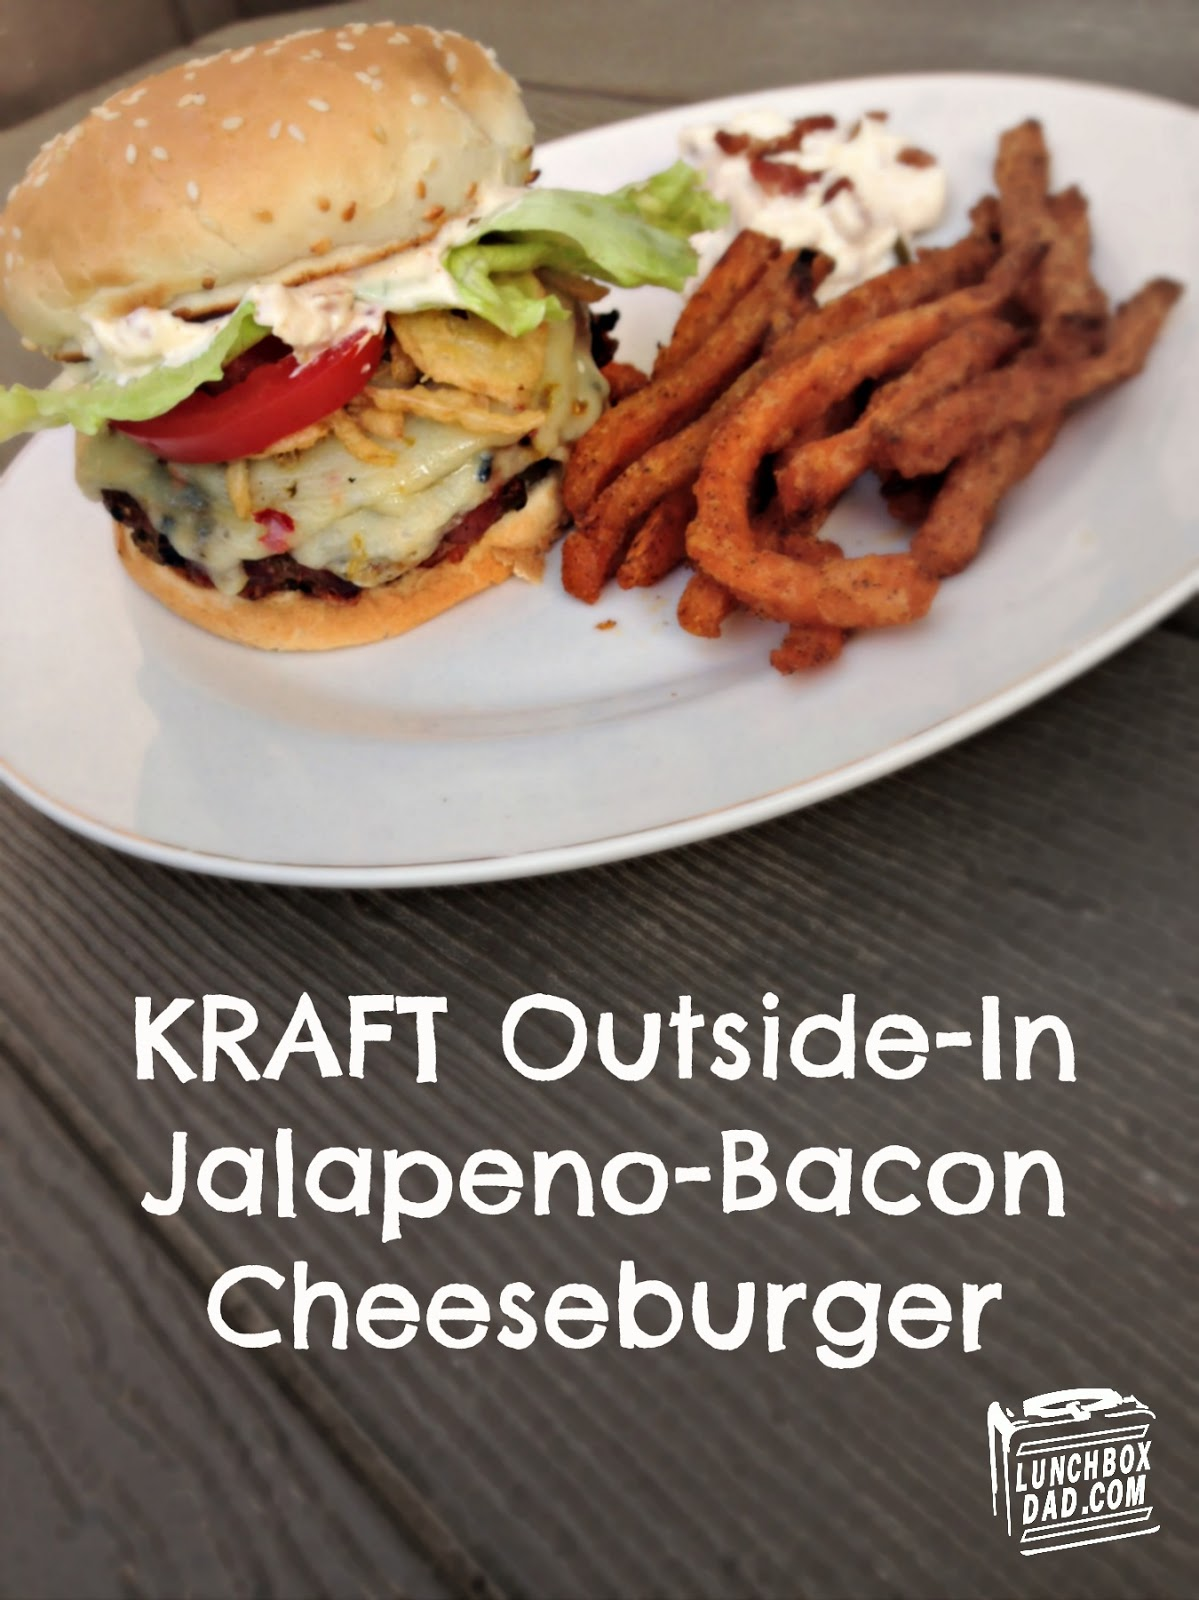 KRAFT Outside-In Jalapeno-Bacon Cheeseburger #SayCheeseburger #CollectiveBias